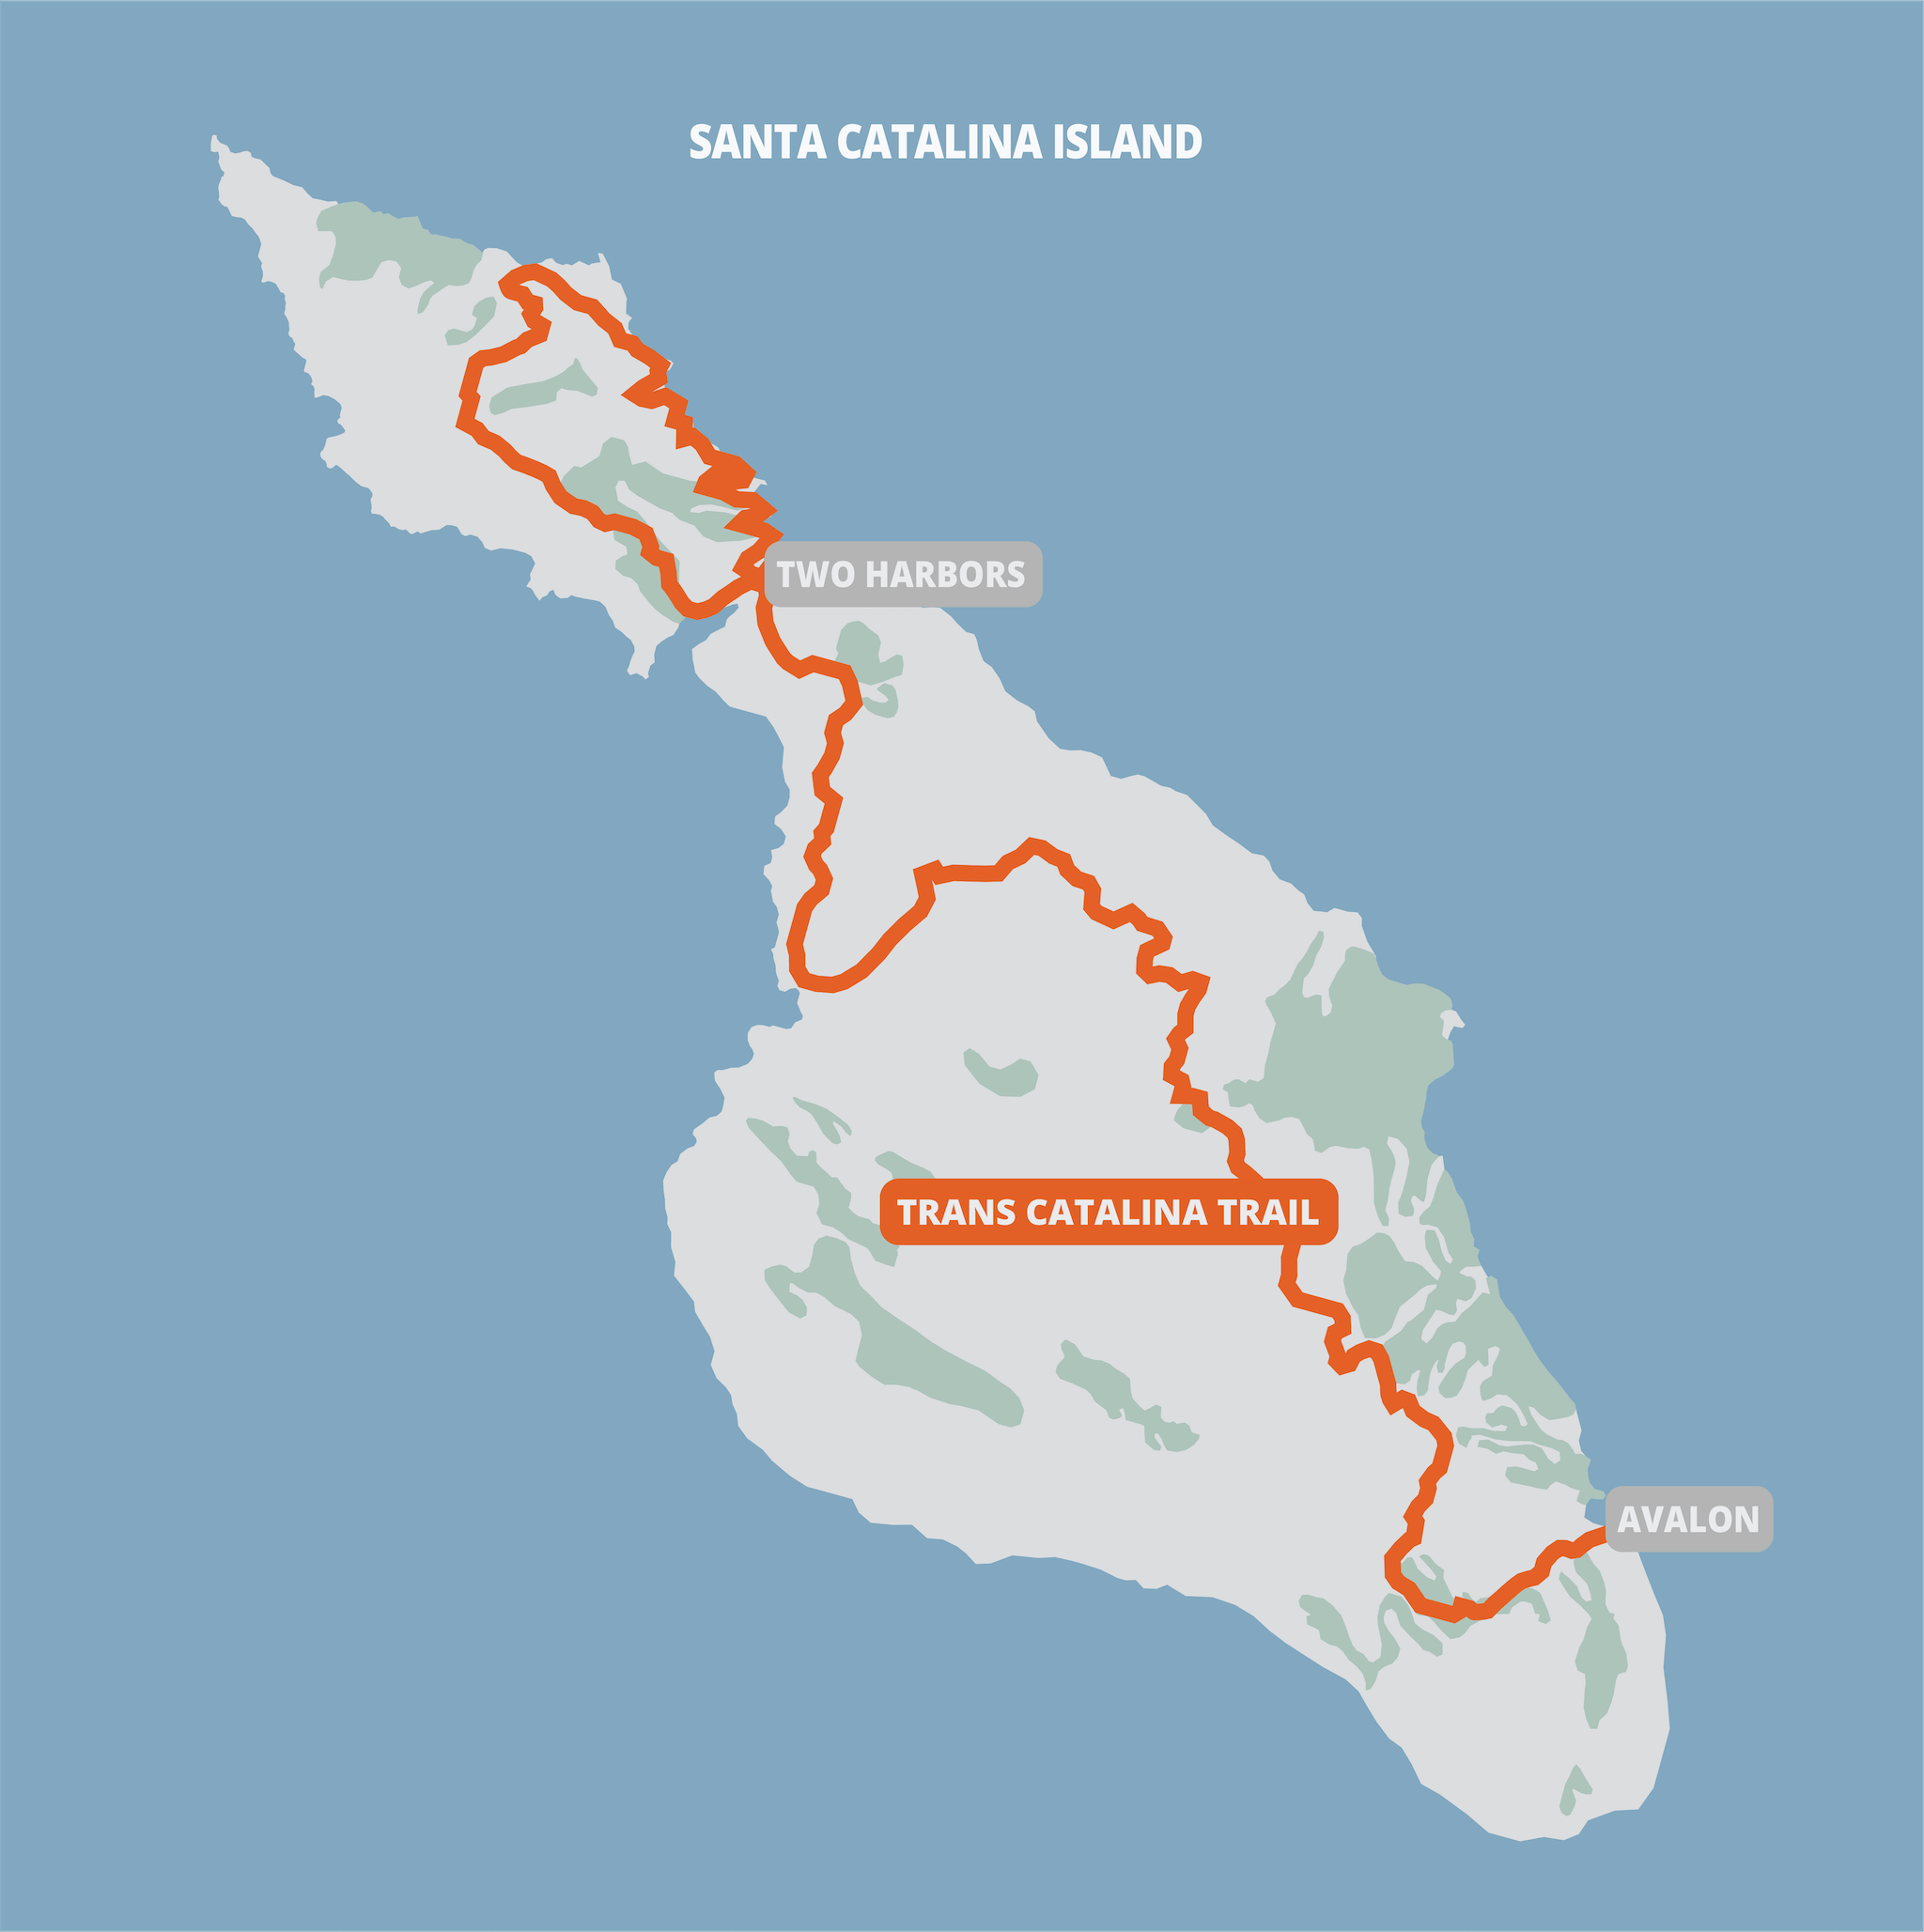 Trans Catalina Trail on a map of the Catalina Island.